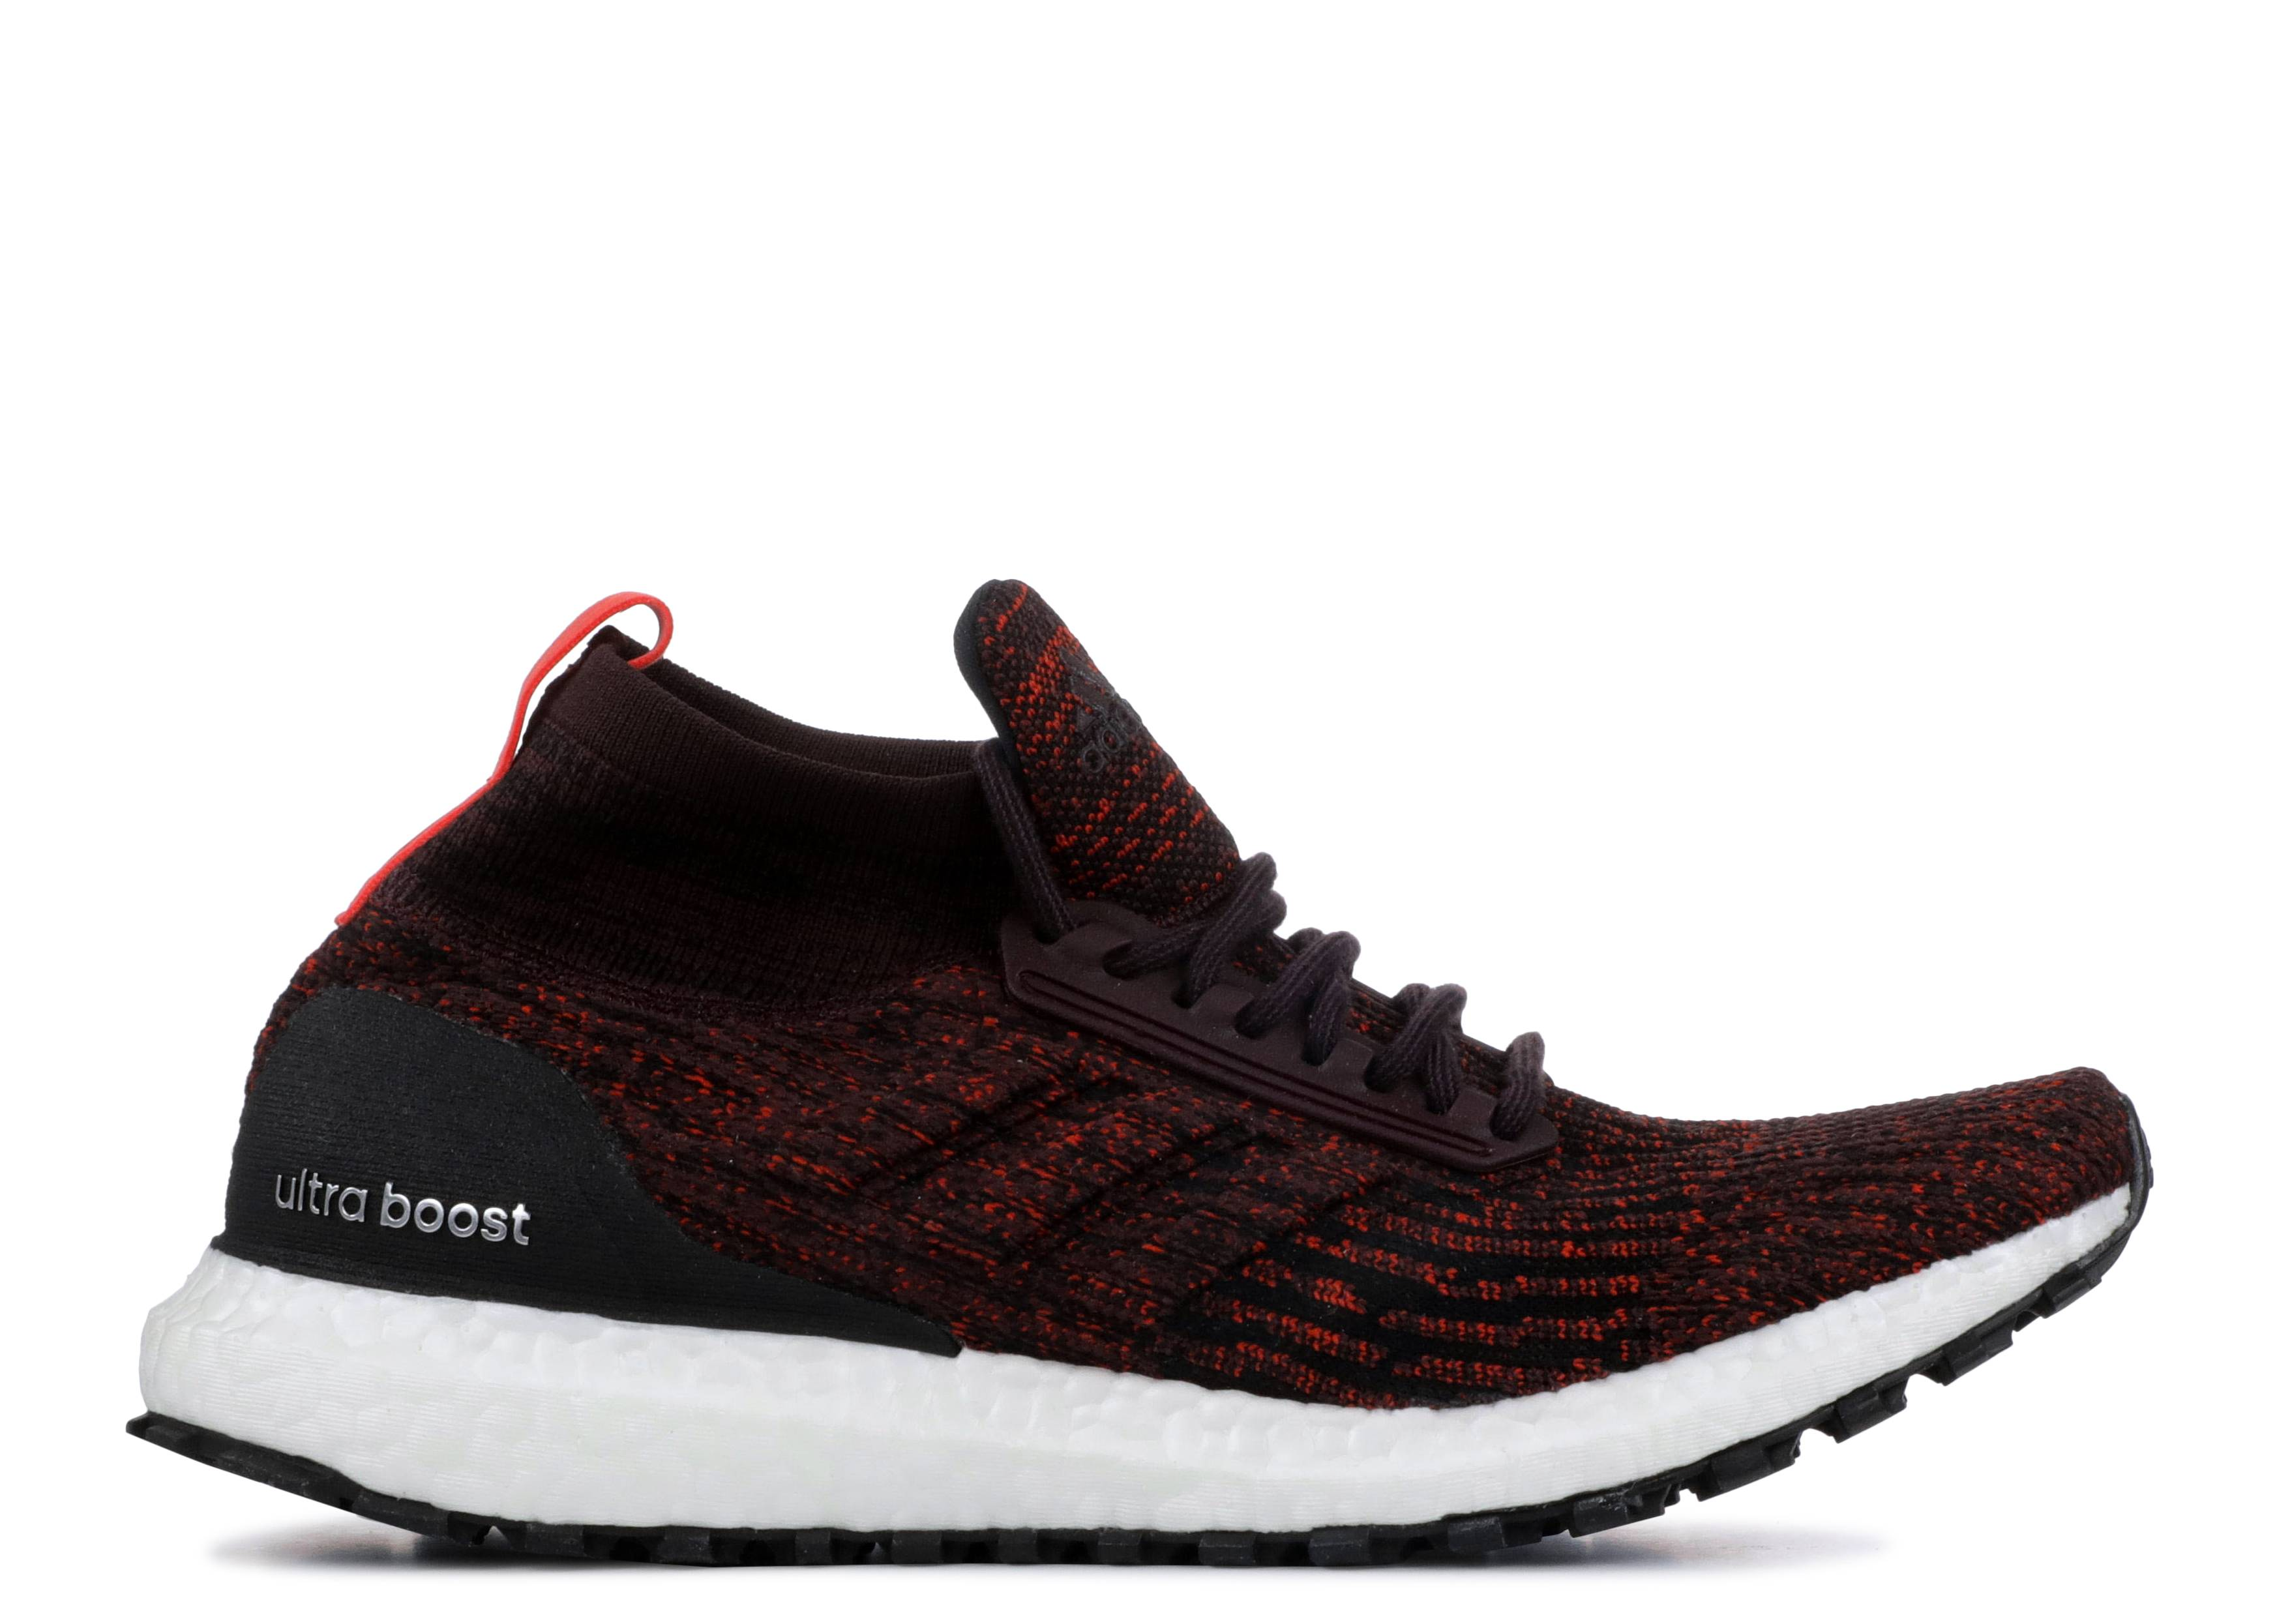 adidas ultra boost mid atr red burgundy release date s82035